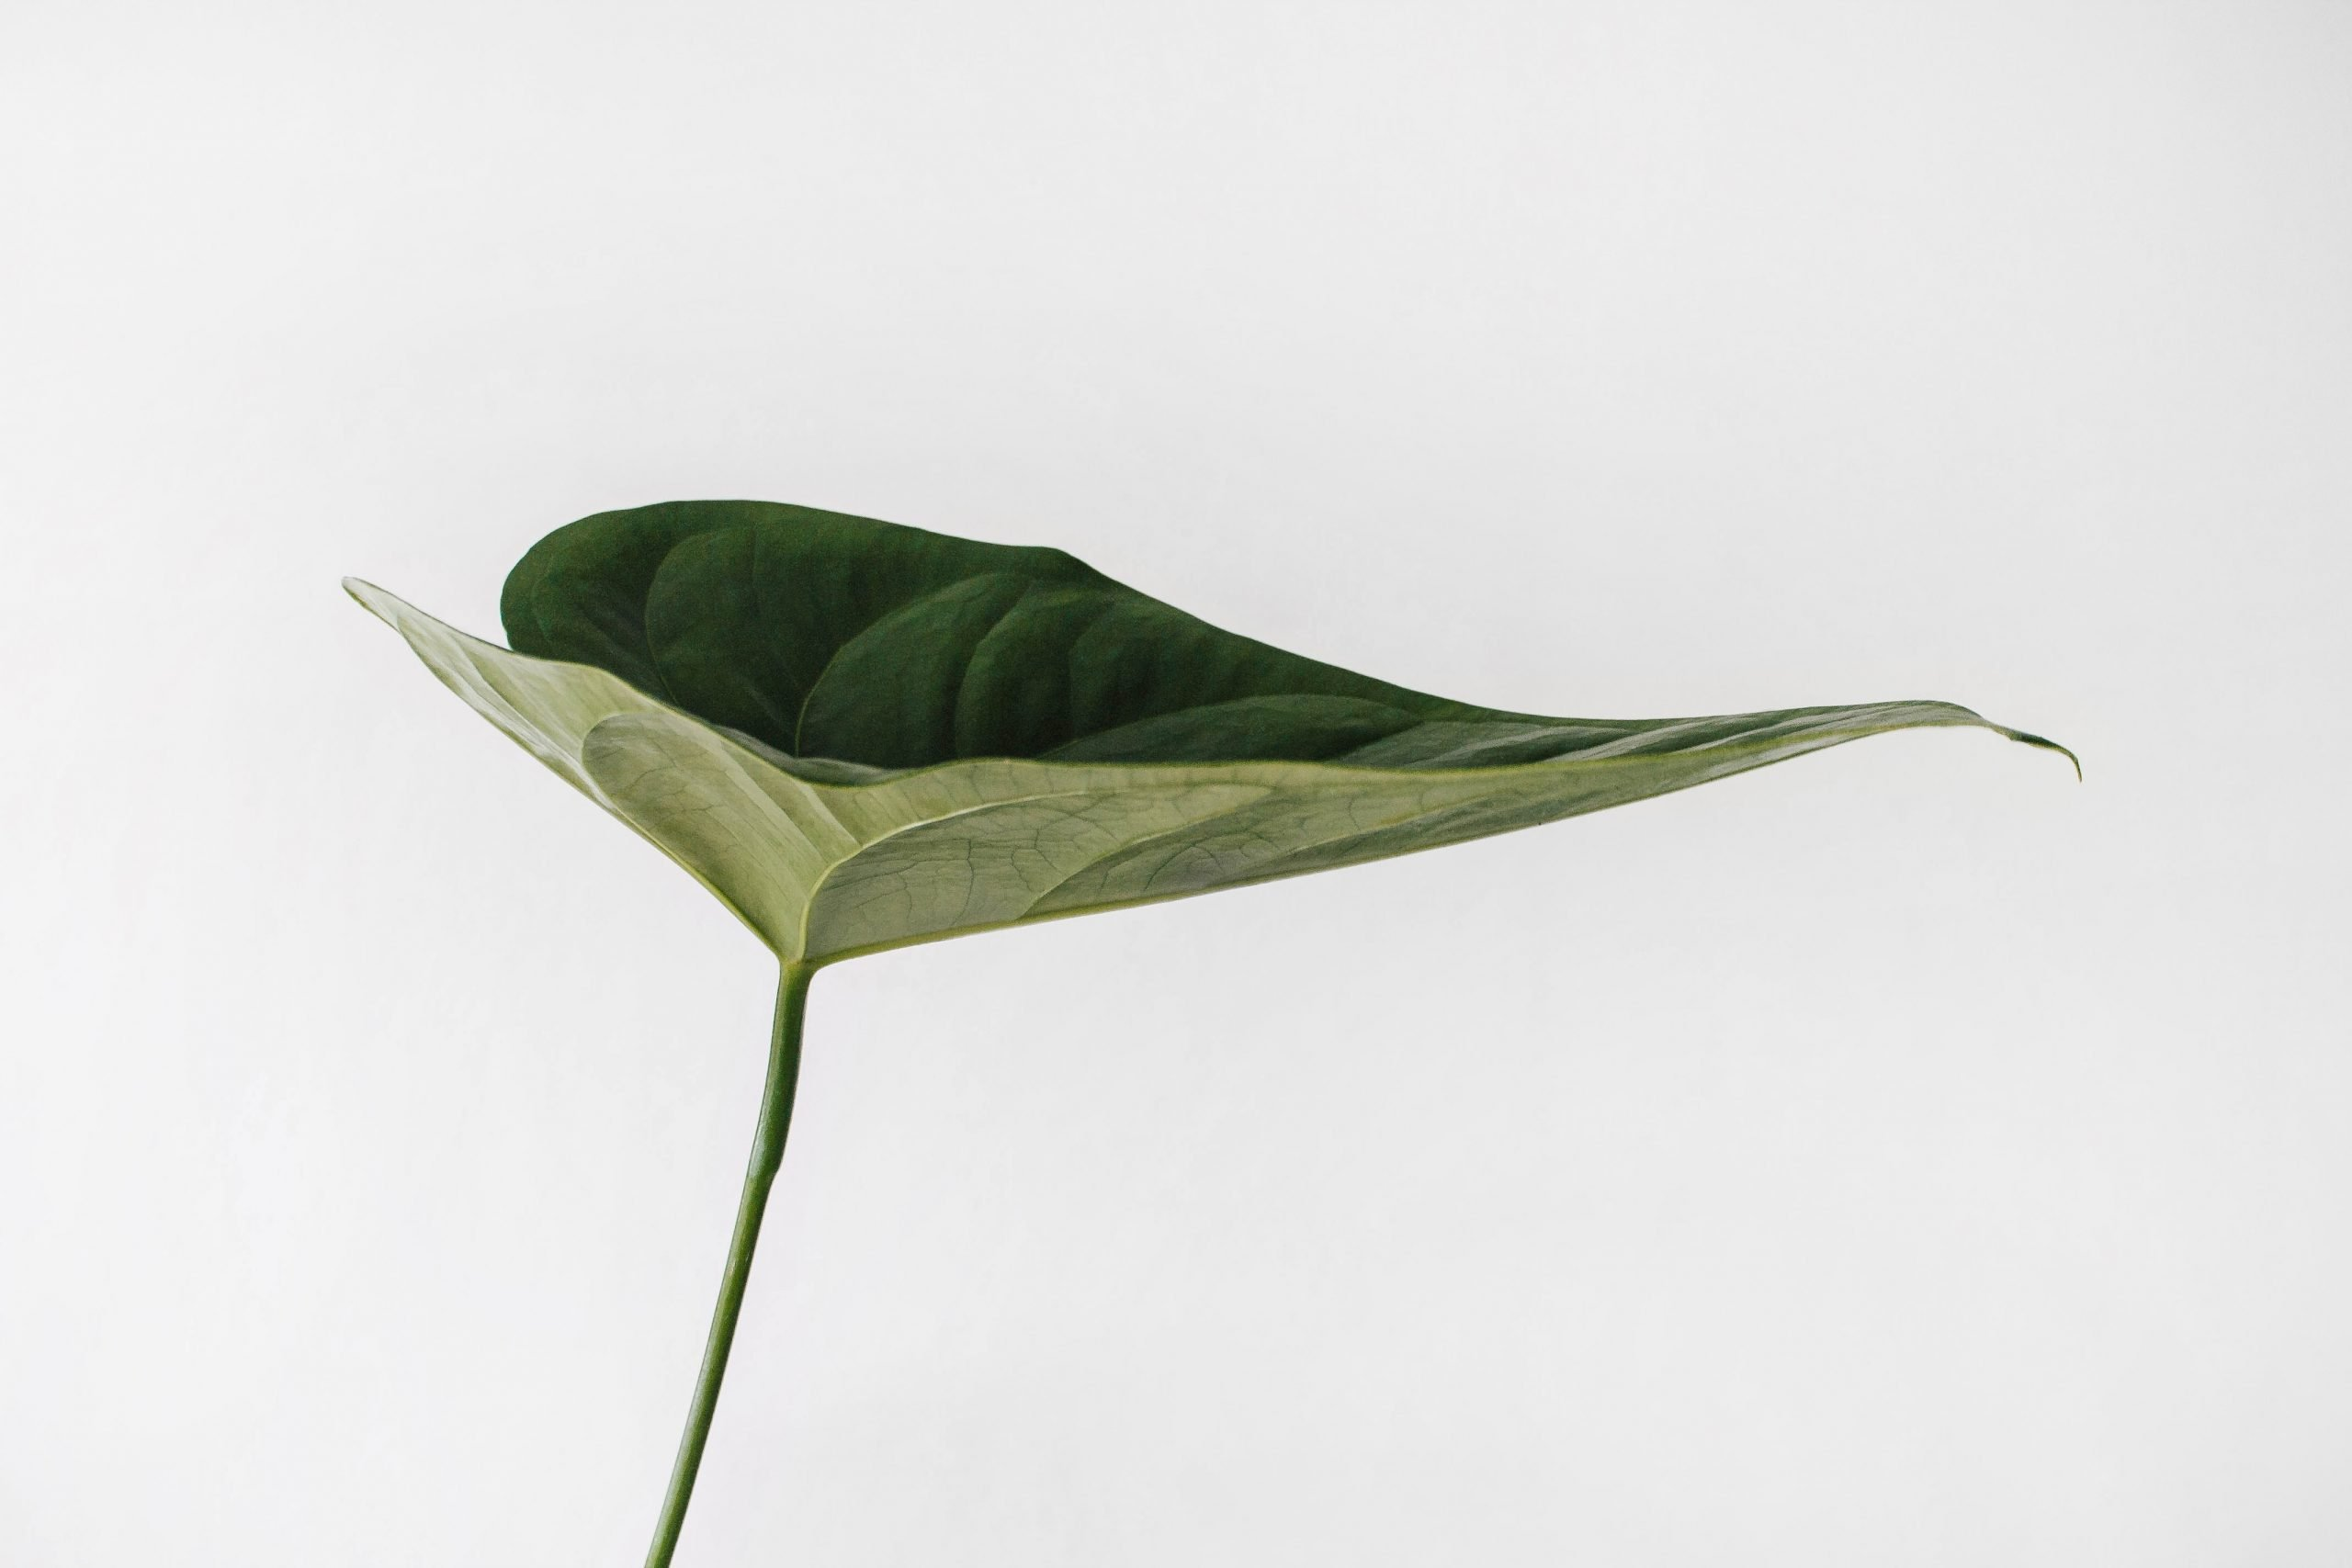 One green plant on a white background.